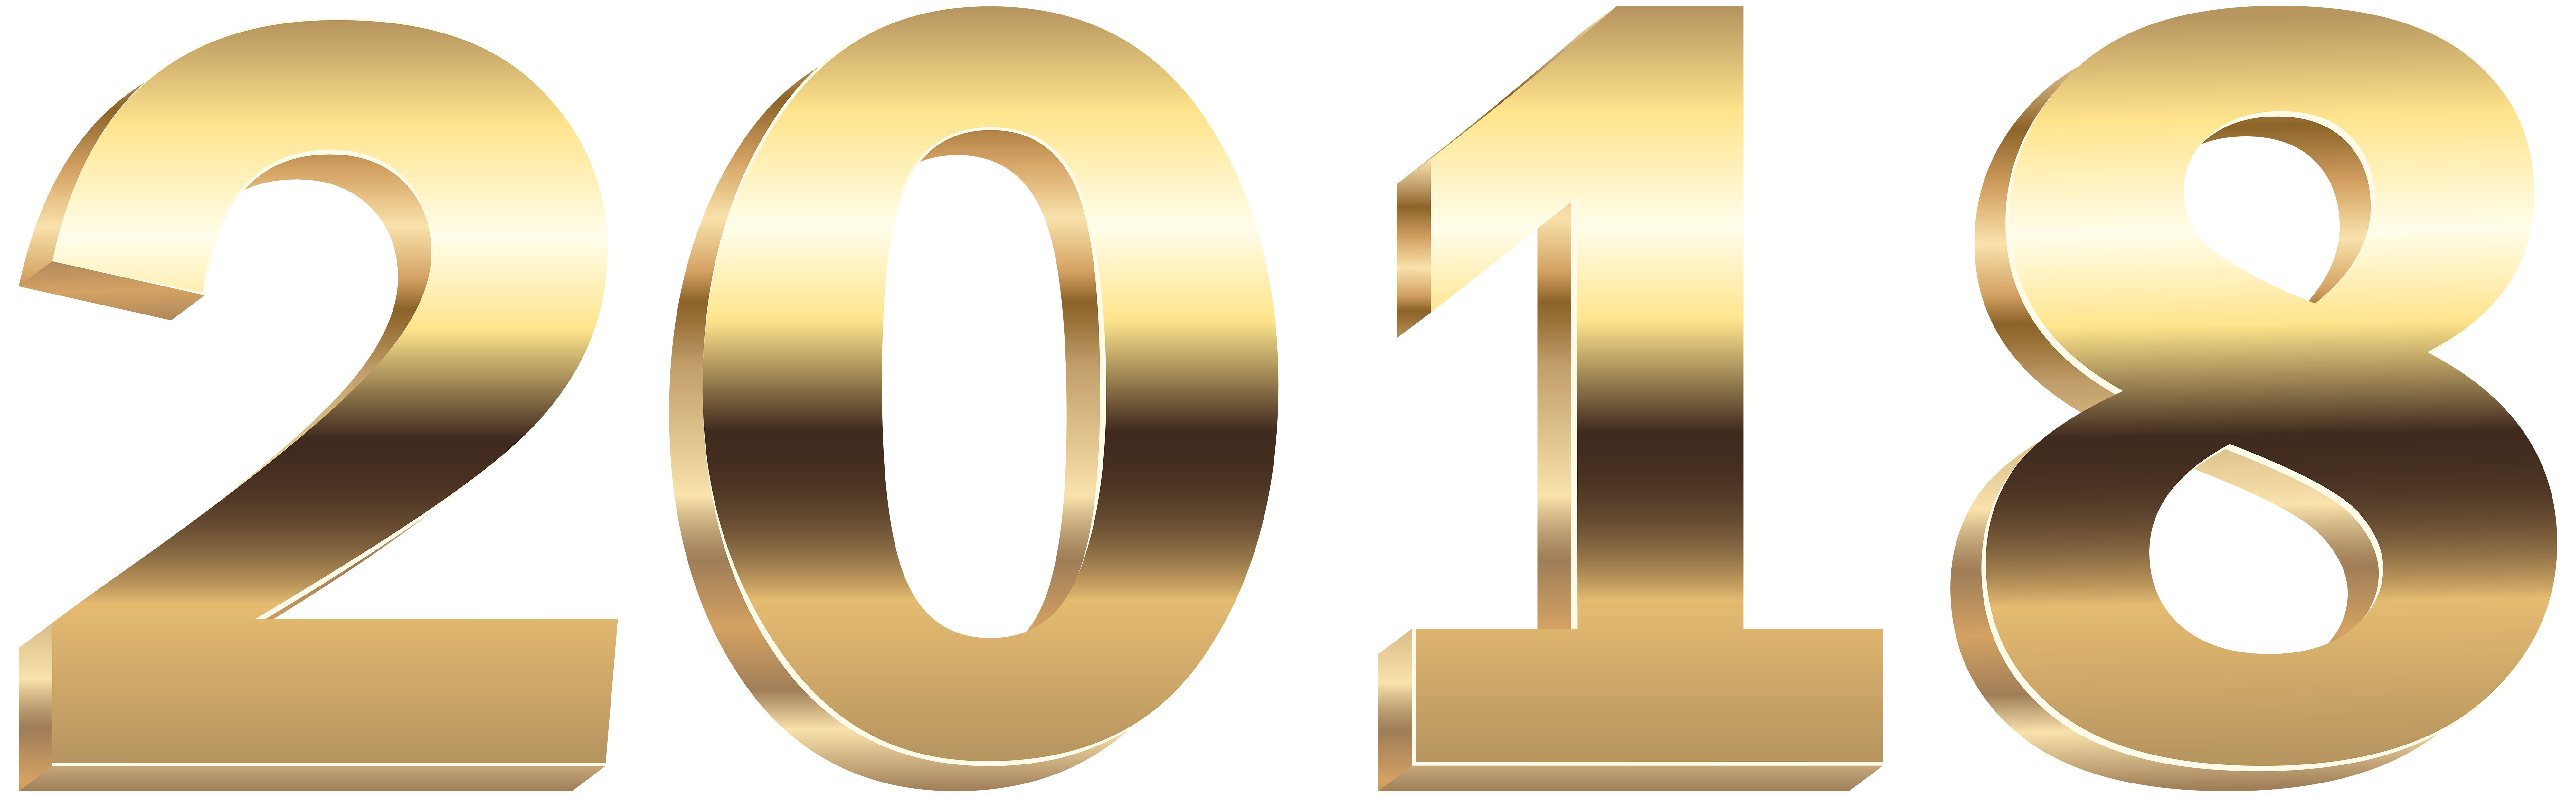 2018 gold png. Clip art gallery